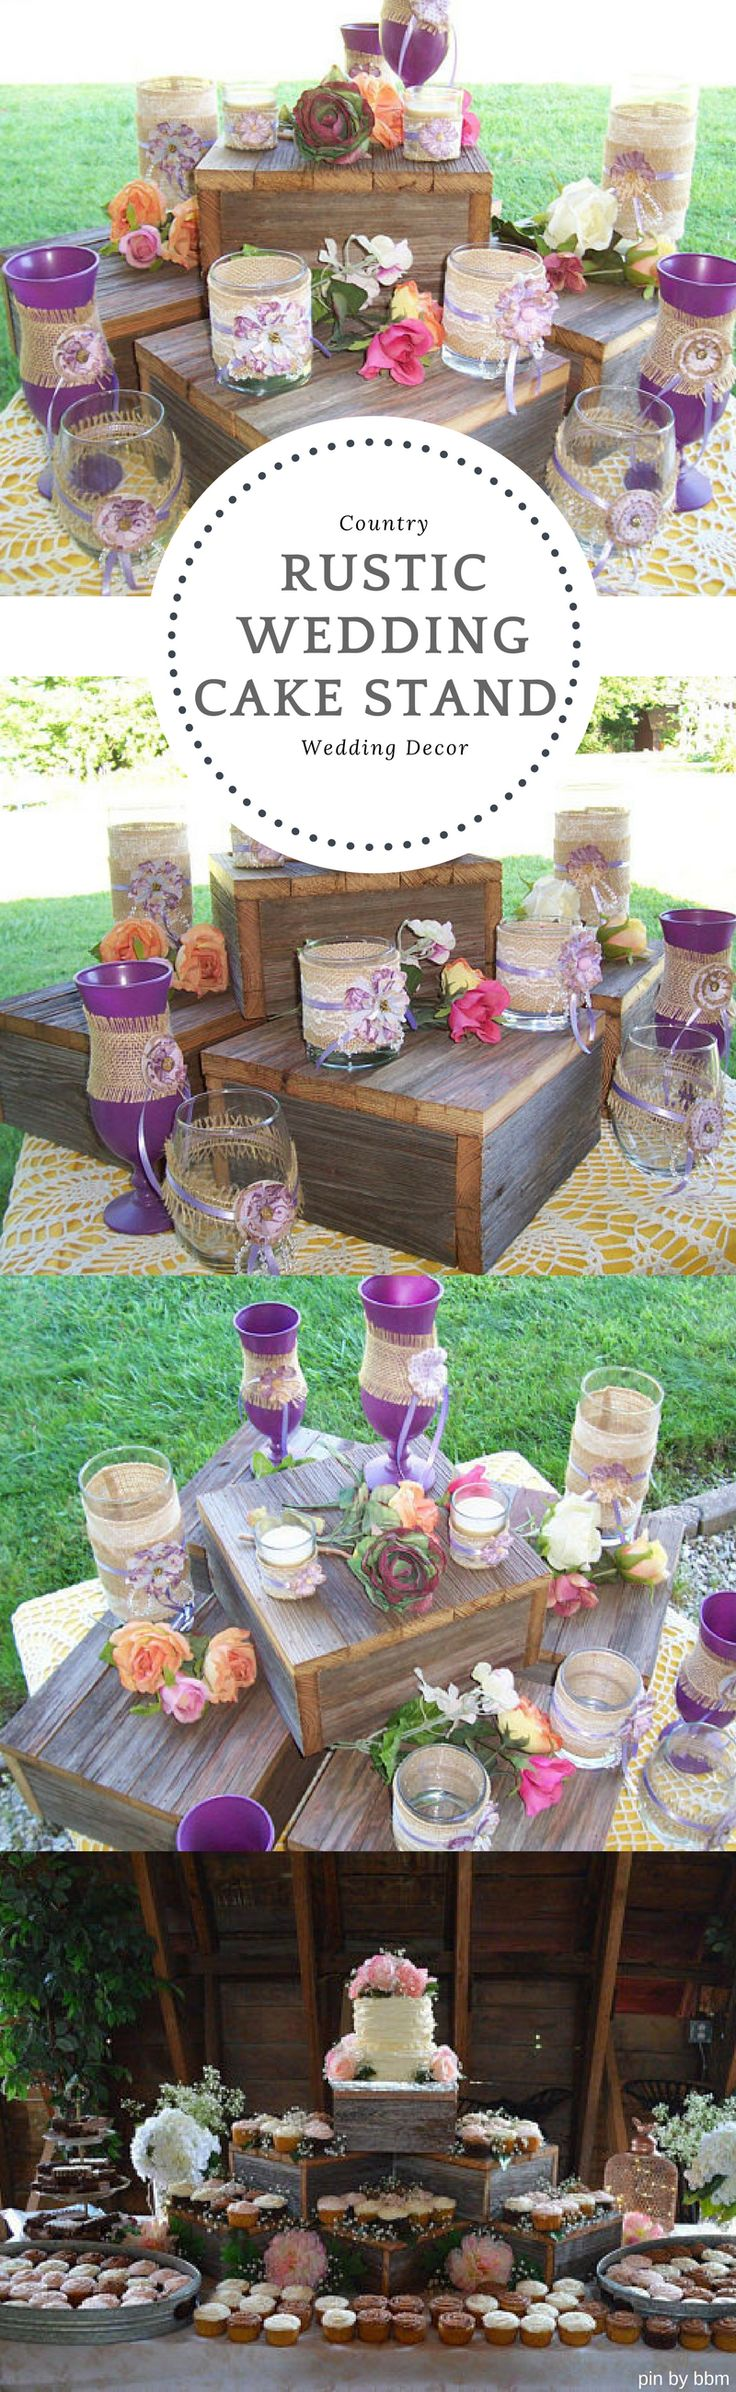 Gorgeous wooden Cake Stand for my Rustic Country wedding! from Etsy #weddingcakestand #ad #countrywedding #rusticwedding #bbmaff